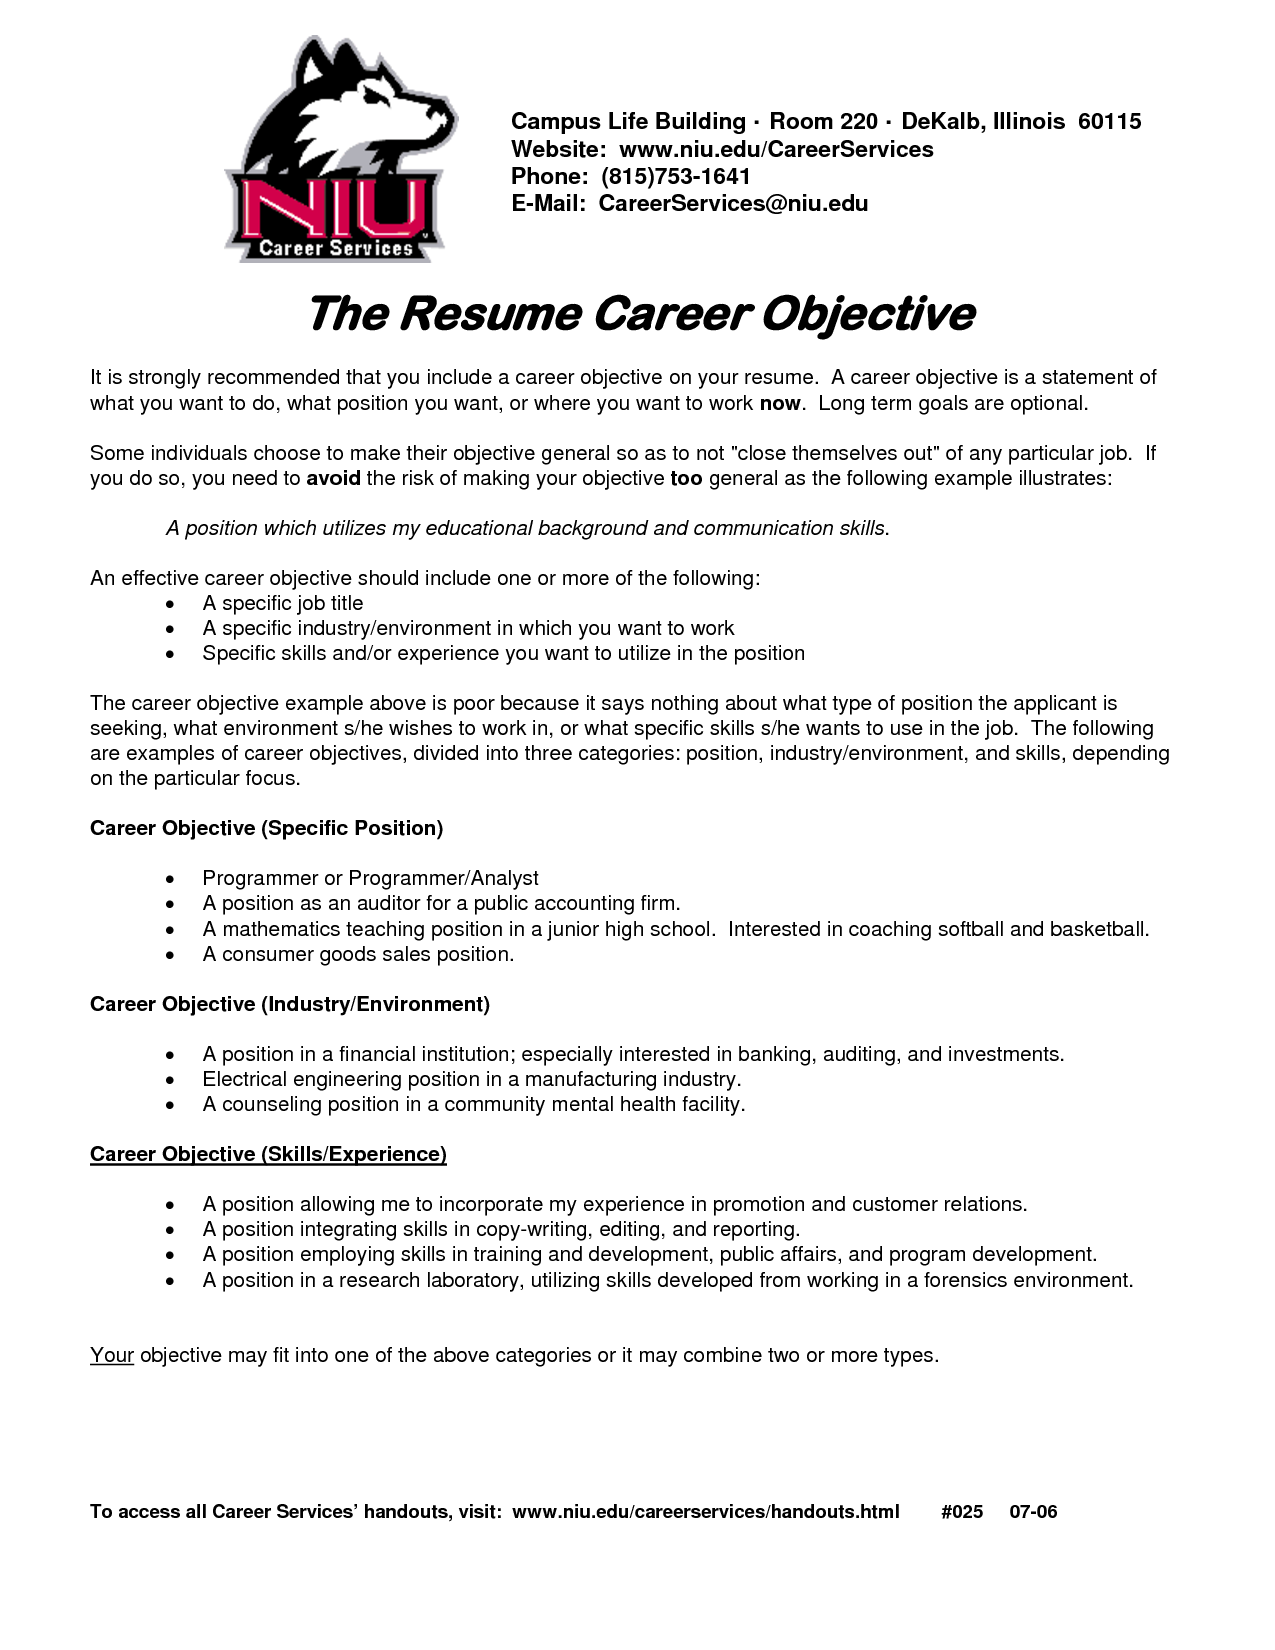 Objective For Resumes Httpswwwgooglesearchqobjective Resume  Resume